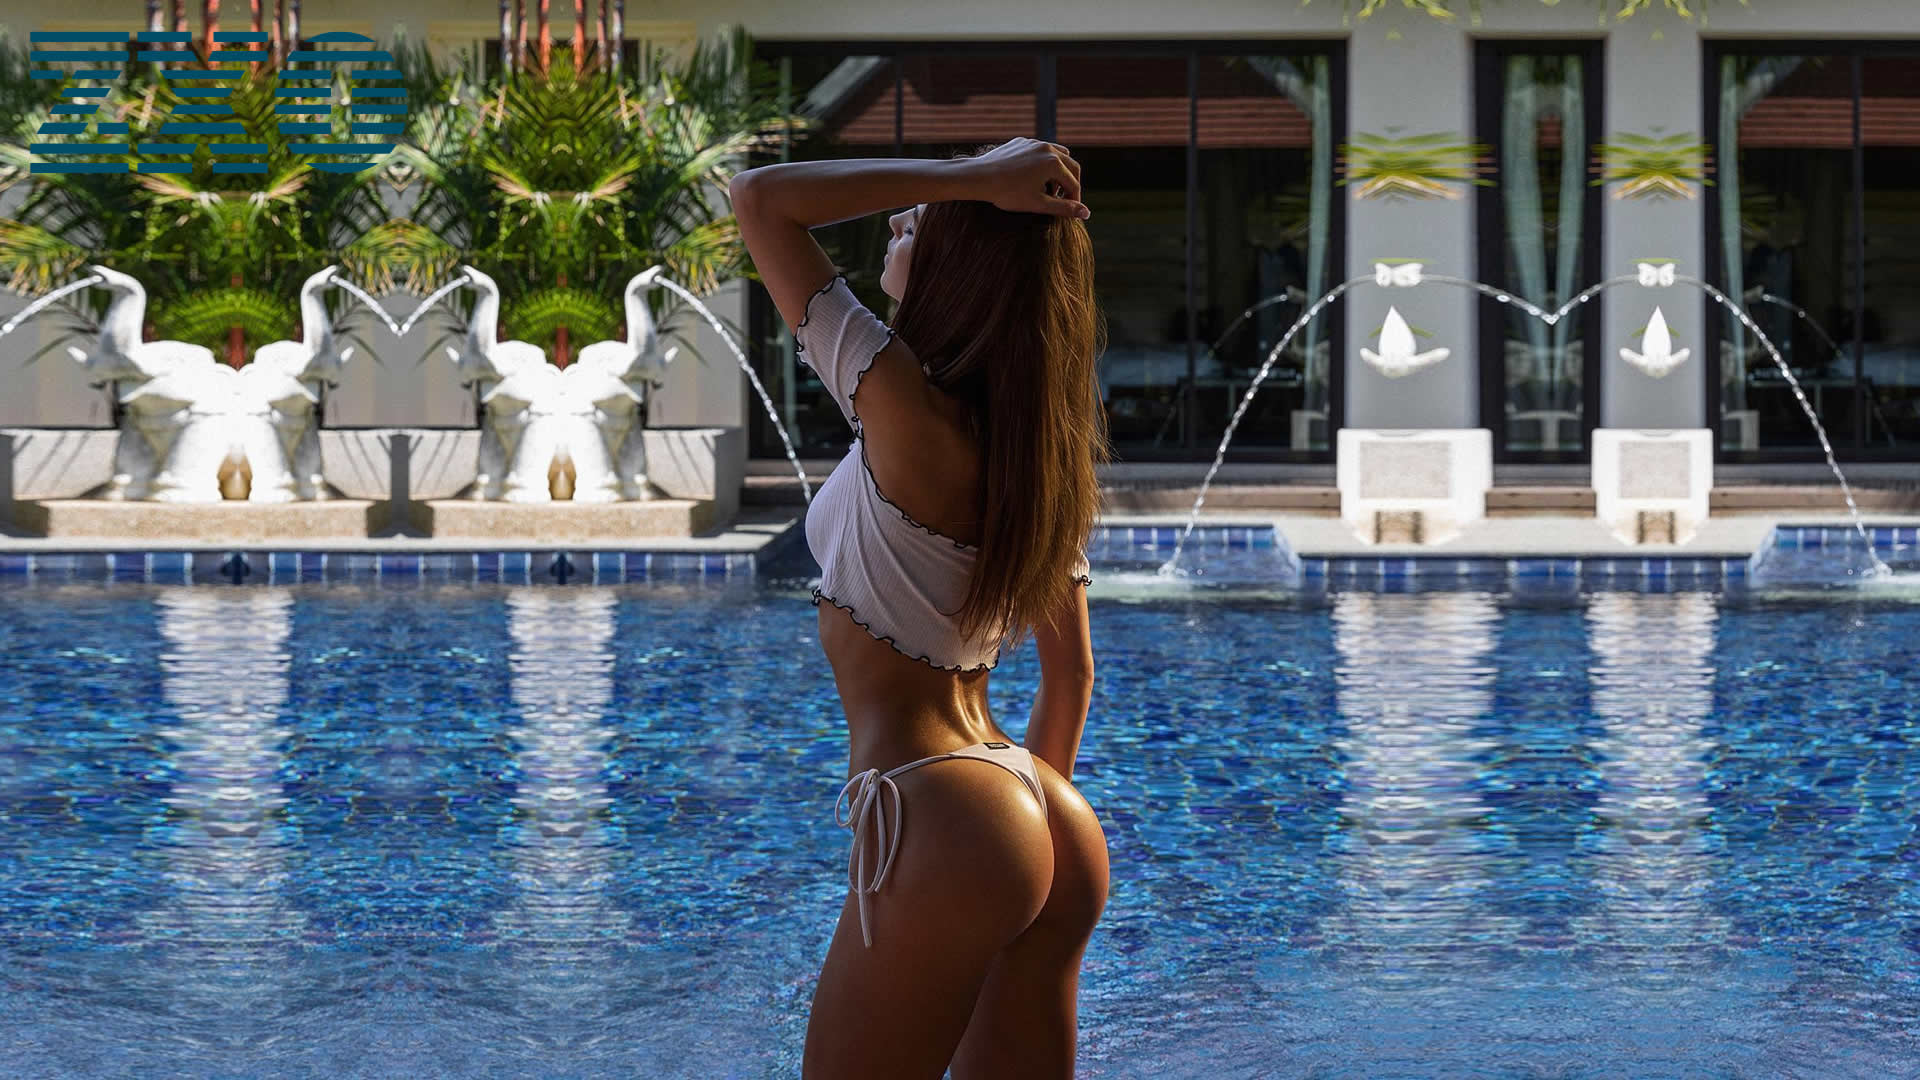 Girls by pool touching ass